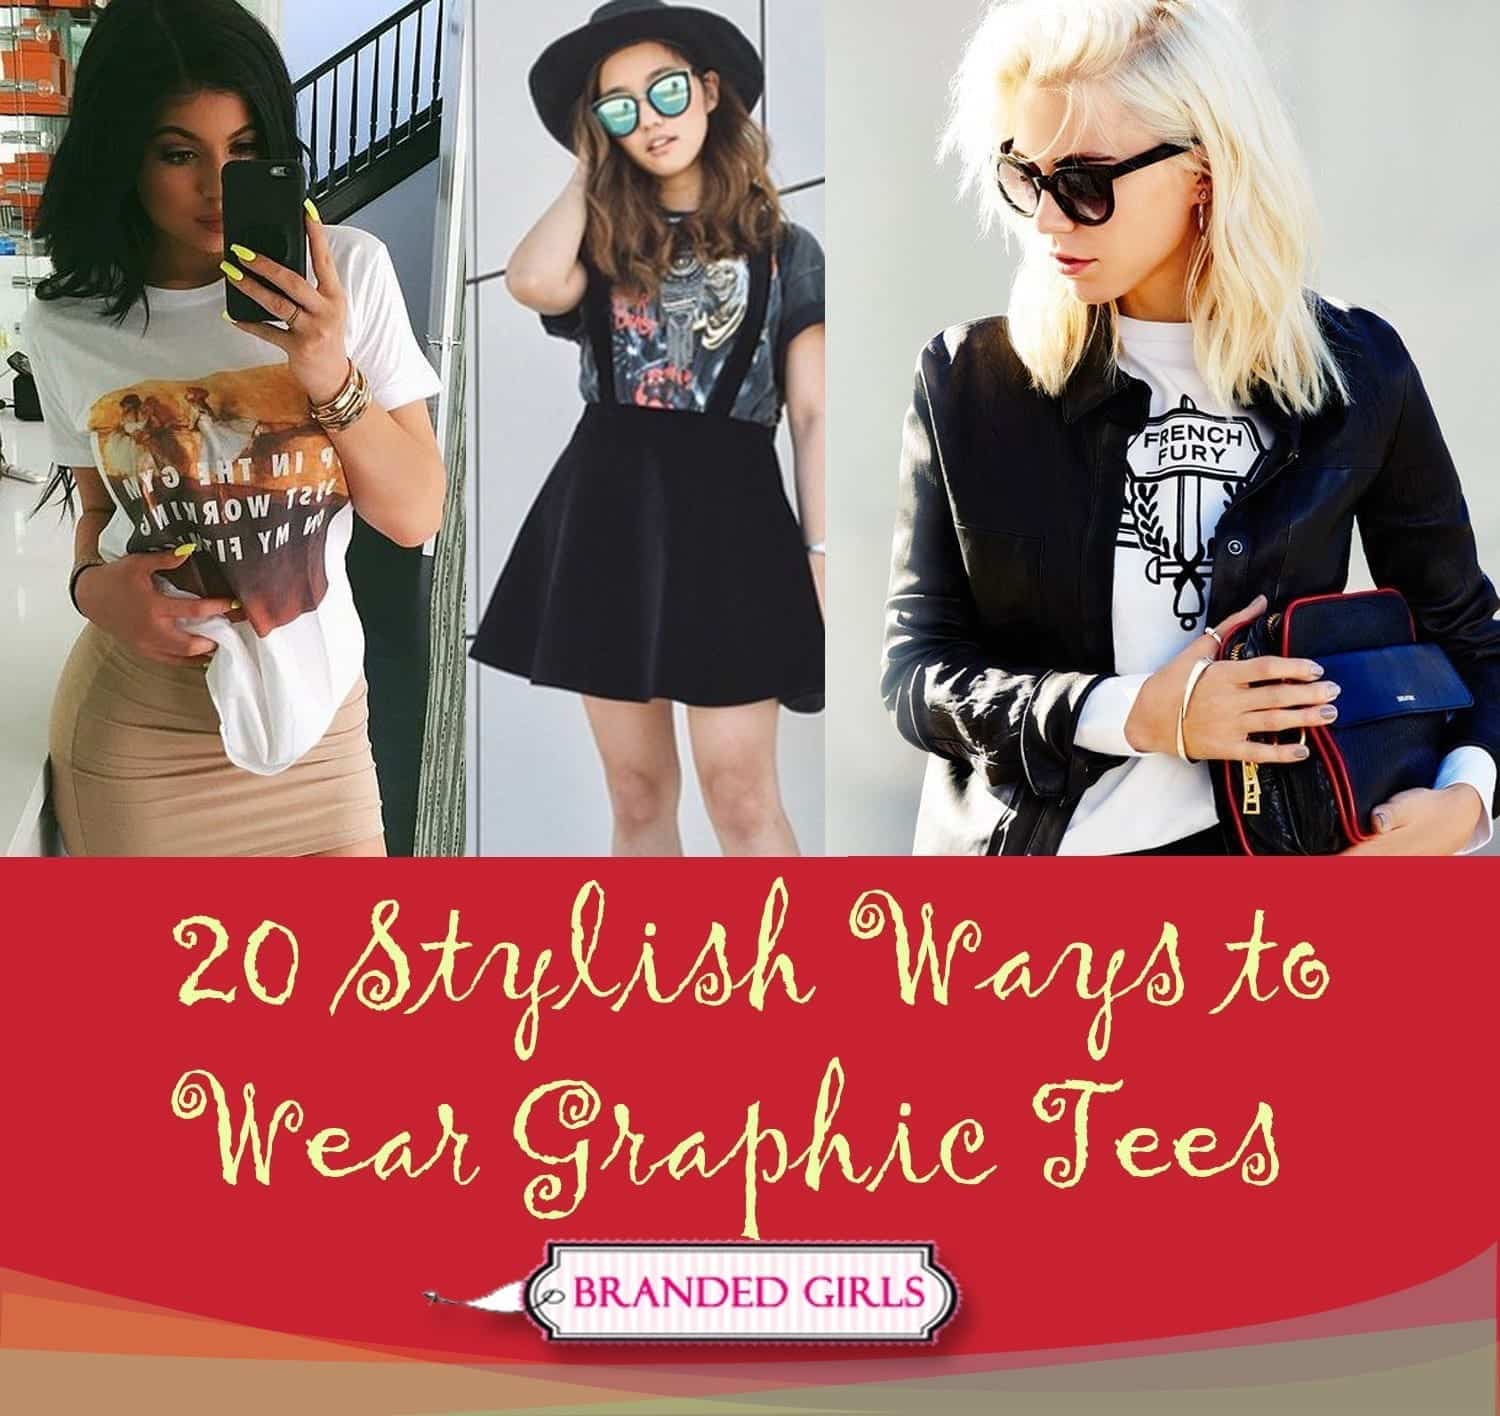 20-stylish-ways-to-wear-graphic-tees Graphic Tee Ideas-20 Stylish Outfit Ideas with Graphic Tees